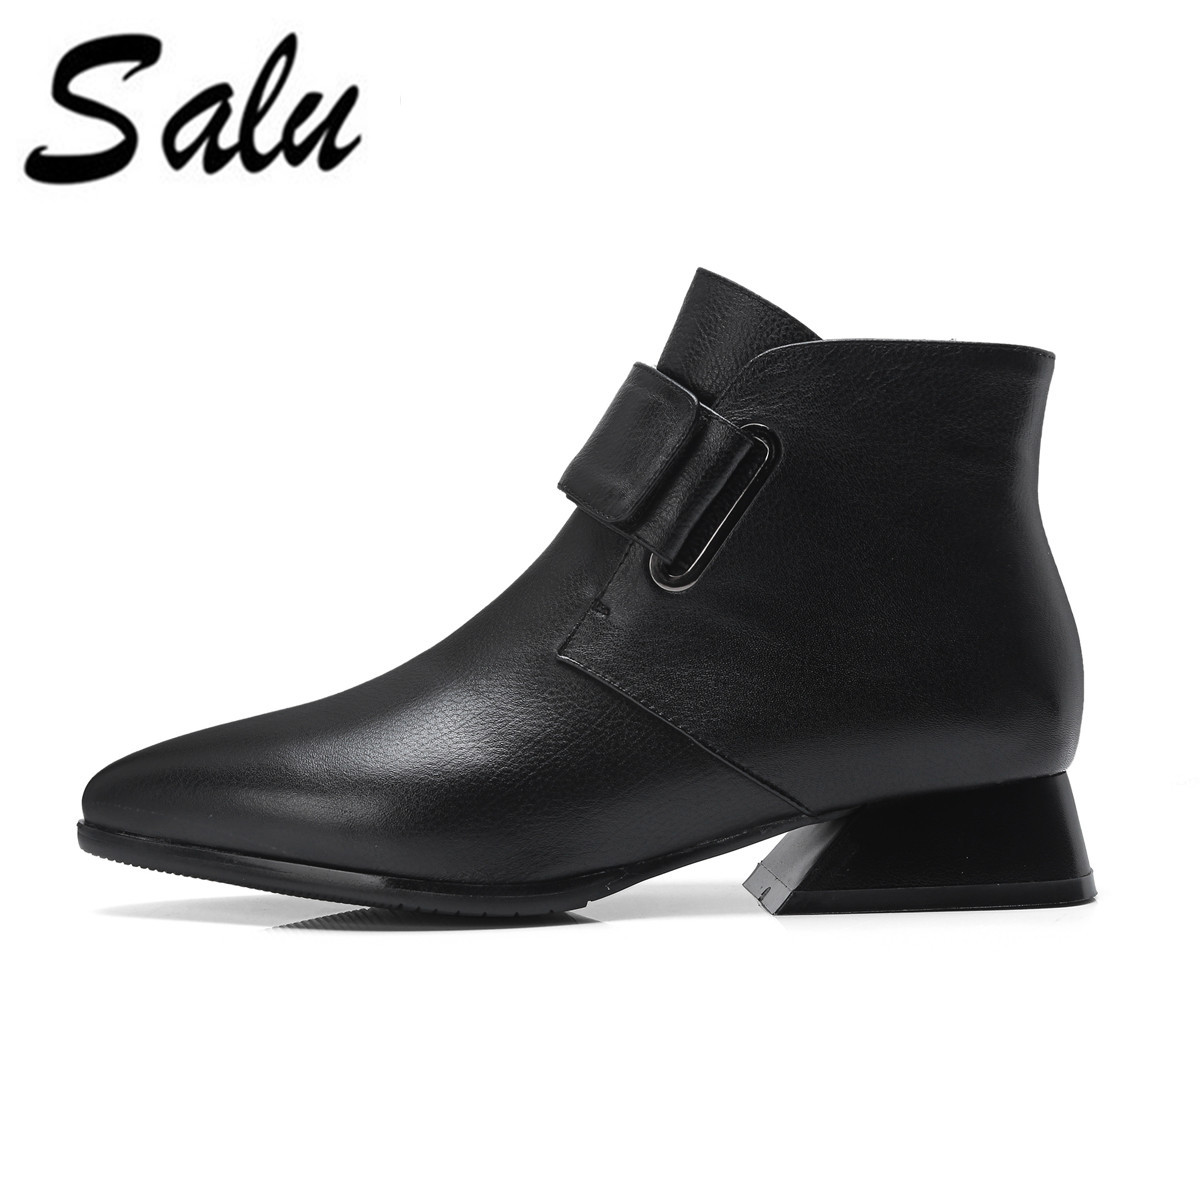 Salu 2018 new top quality Genuine leather ankle boots for women pointed toe autumn winter boots solid colors high heels boots цены